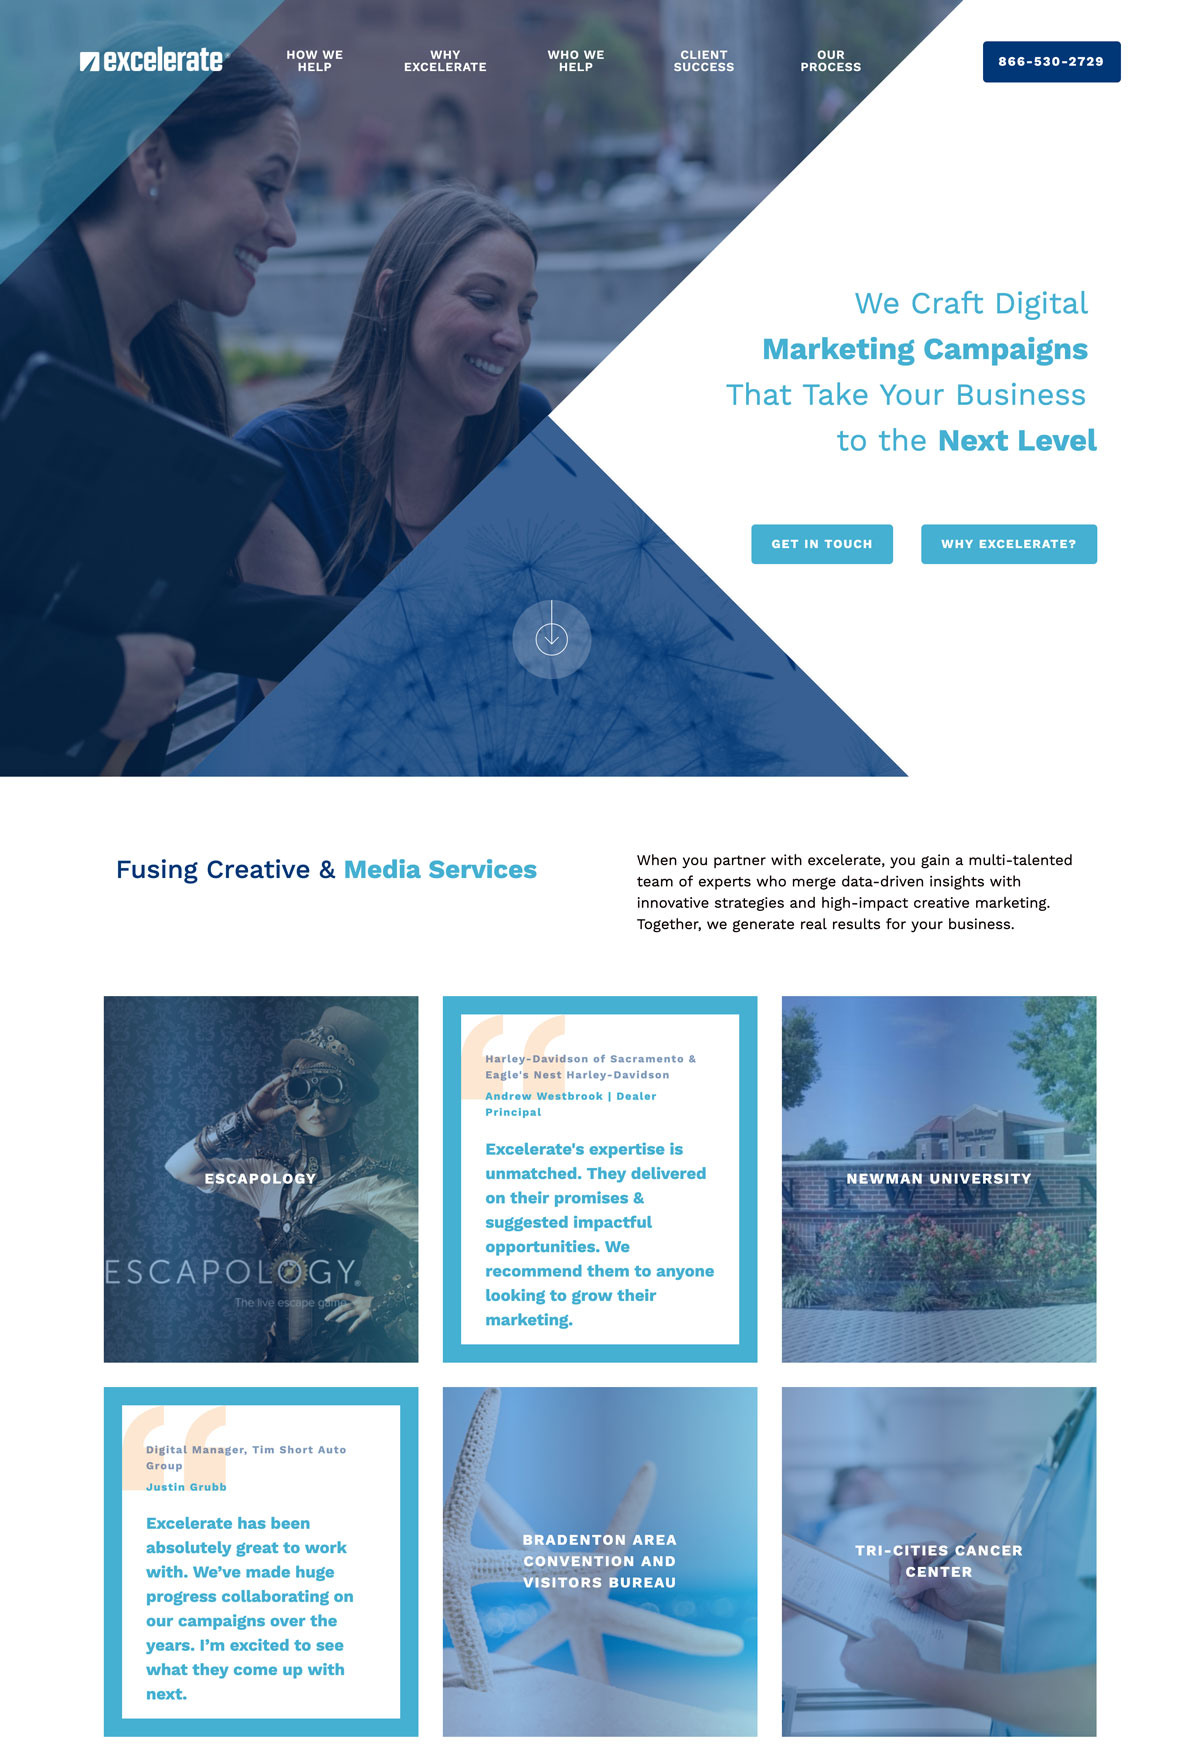 Image of website for excelerate Digital